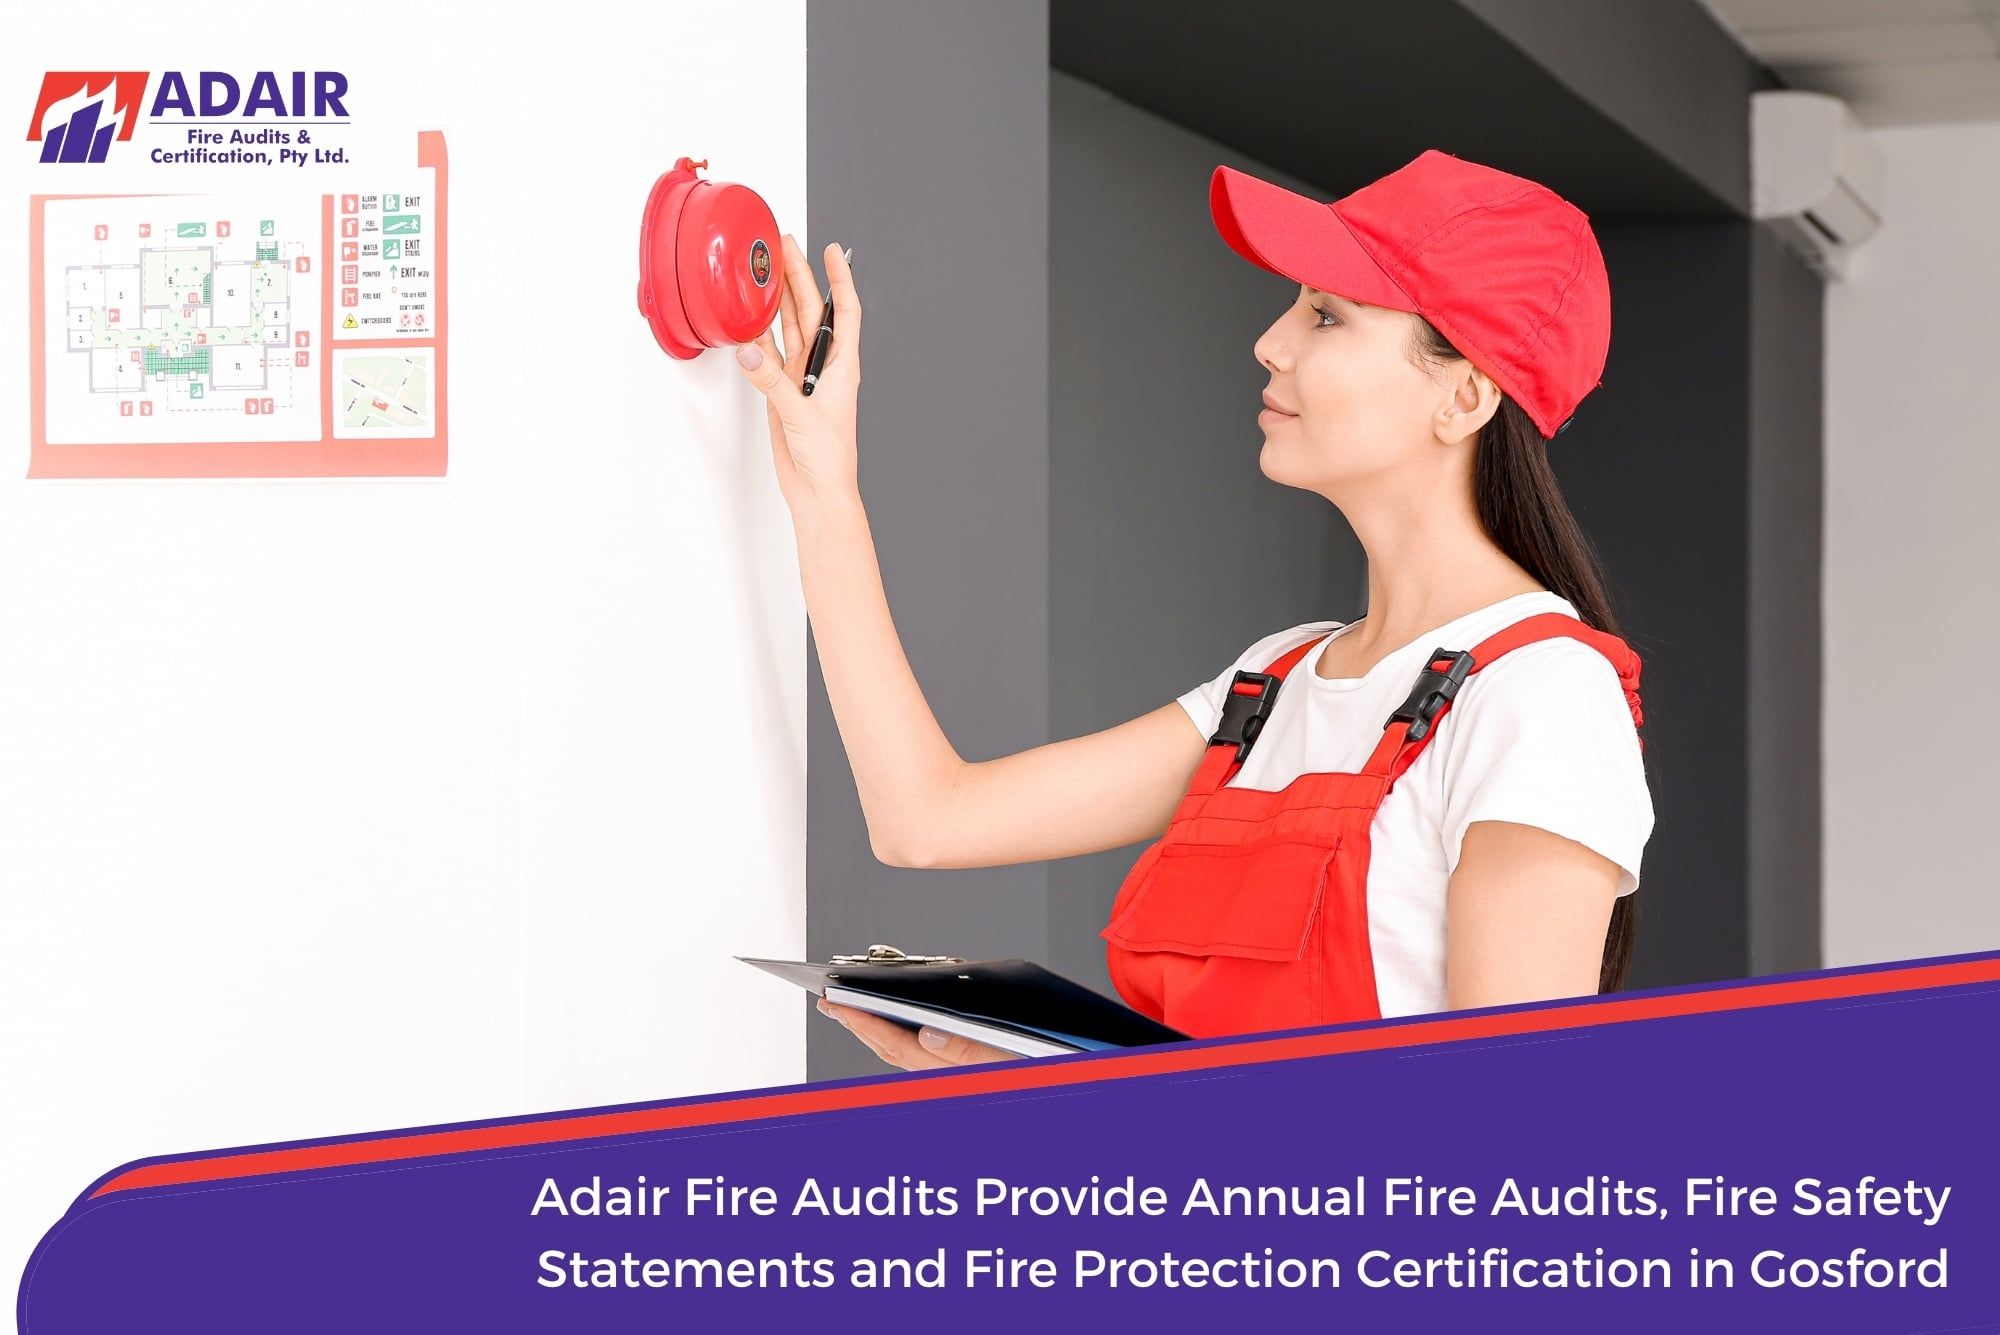 Fire Safety Statements and Fire Protection Certification in Gosford